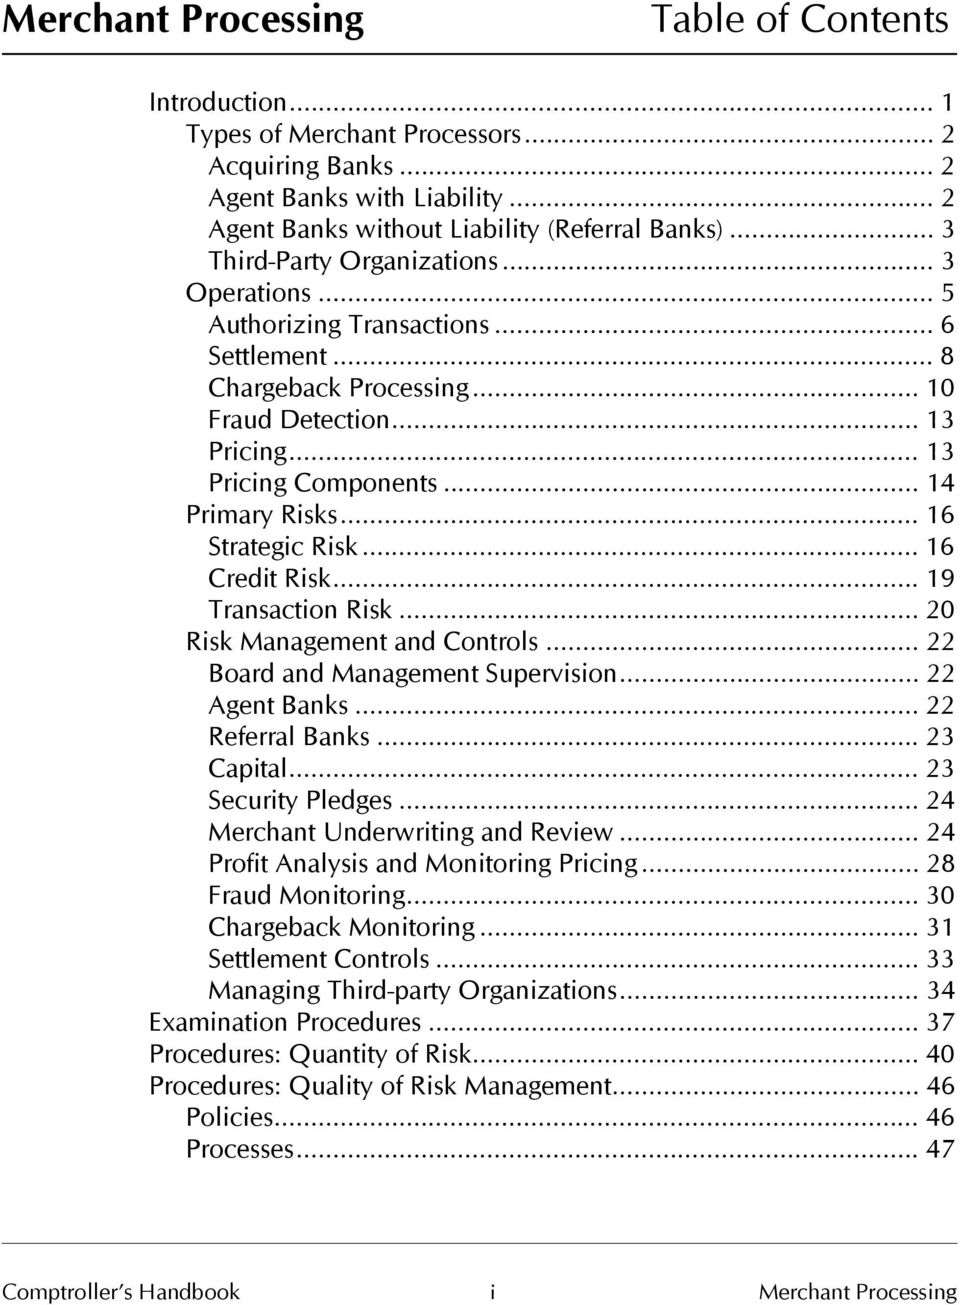 .. 16 Strategic Risk... 16 Credit Risk... 19 Transaction Risk... 20 Risk Management and Controls... 22 Board and Management Supervision... 22 Agent Banks... 22 Referral Banks... 23 Capital.